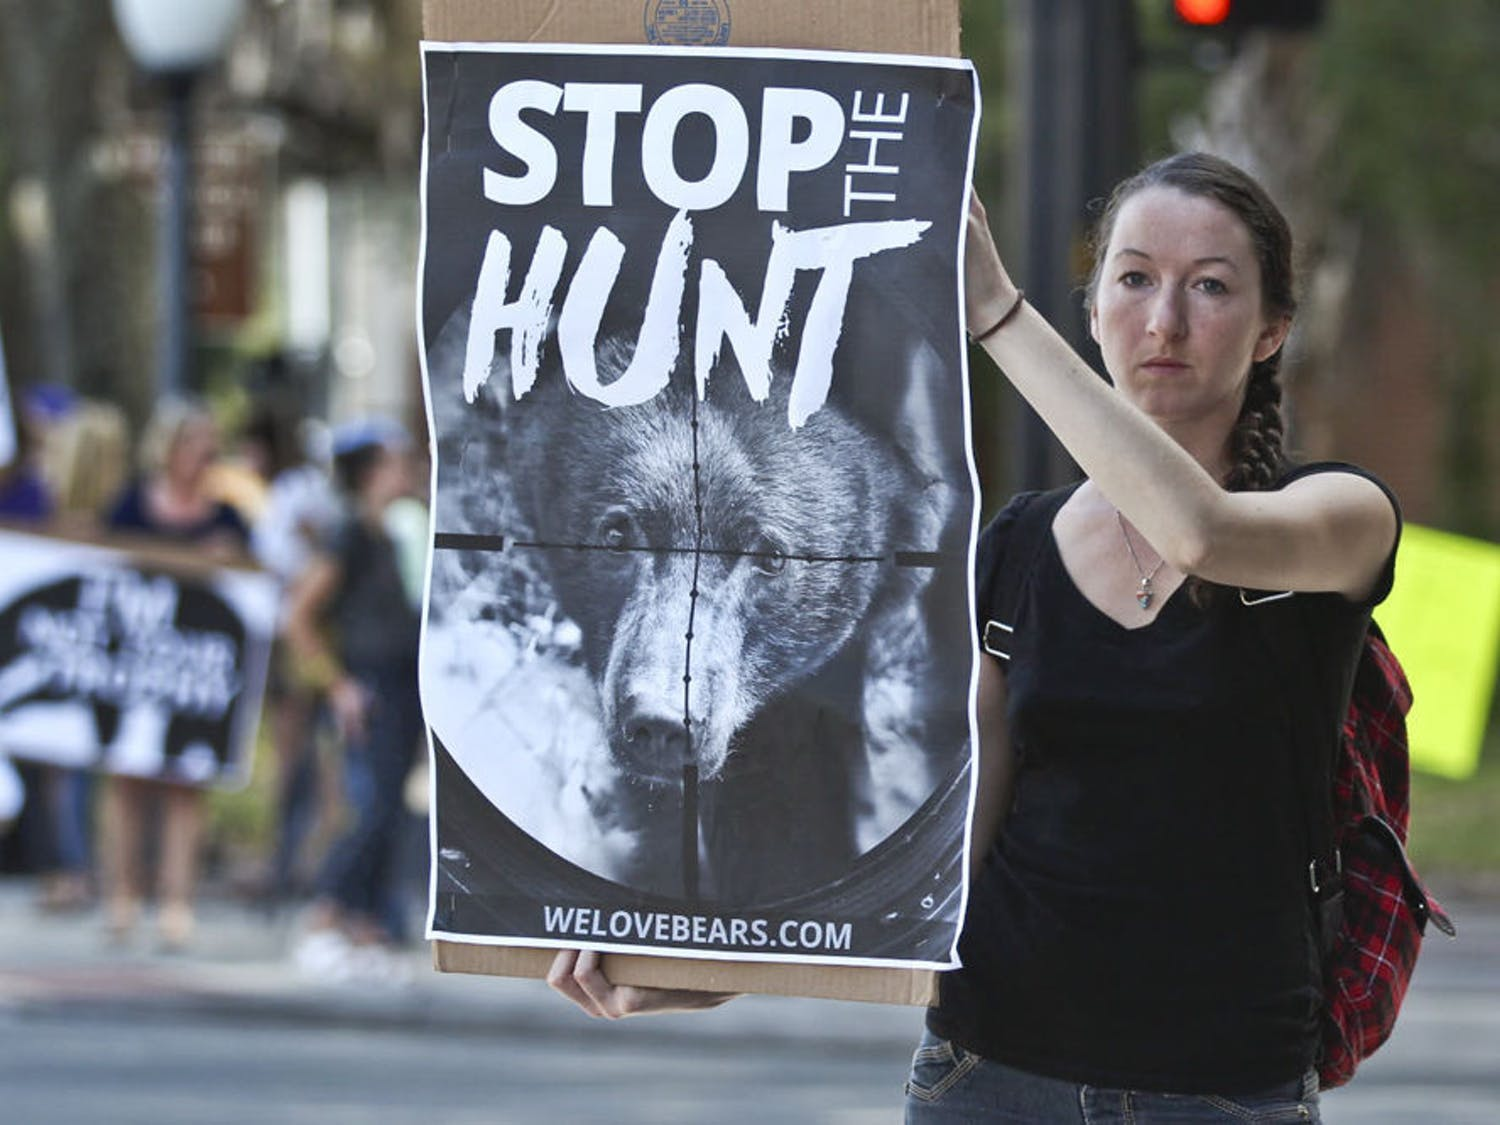 """Karrie Ford, 27, protests against the Florida bear hunt at the Stop the Bear Hunt Rally at the intersection of Main Street and University Avenue on Oct. 23, 2015. """"The number of bears in Florida versus the number of hunting permits sold just doesn't make sense,"""" she said."""